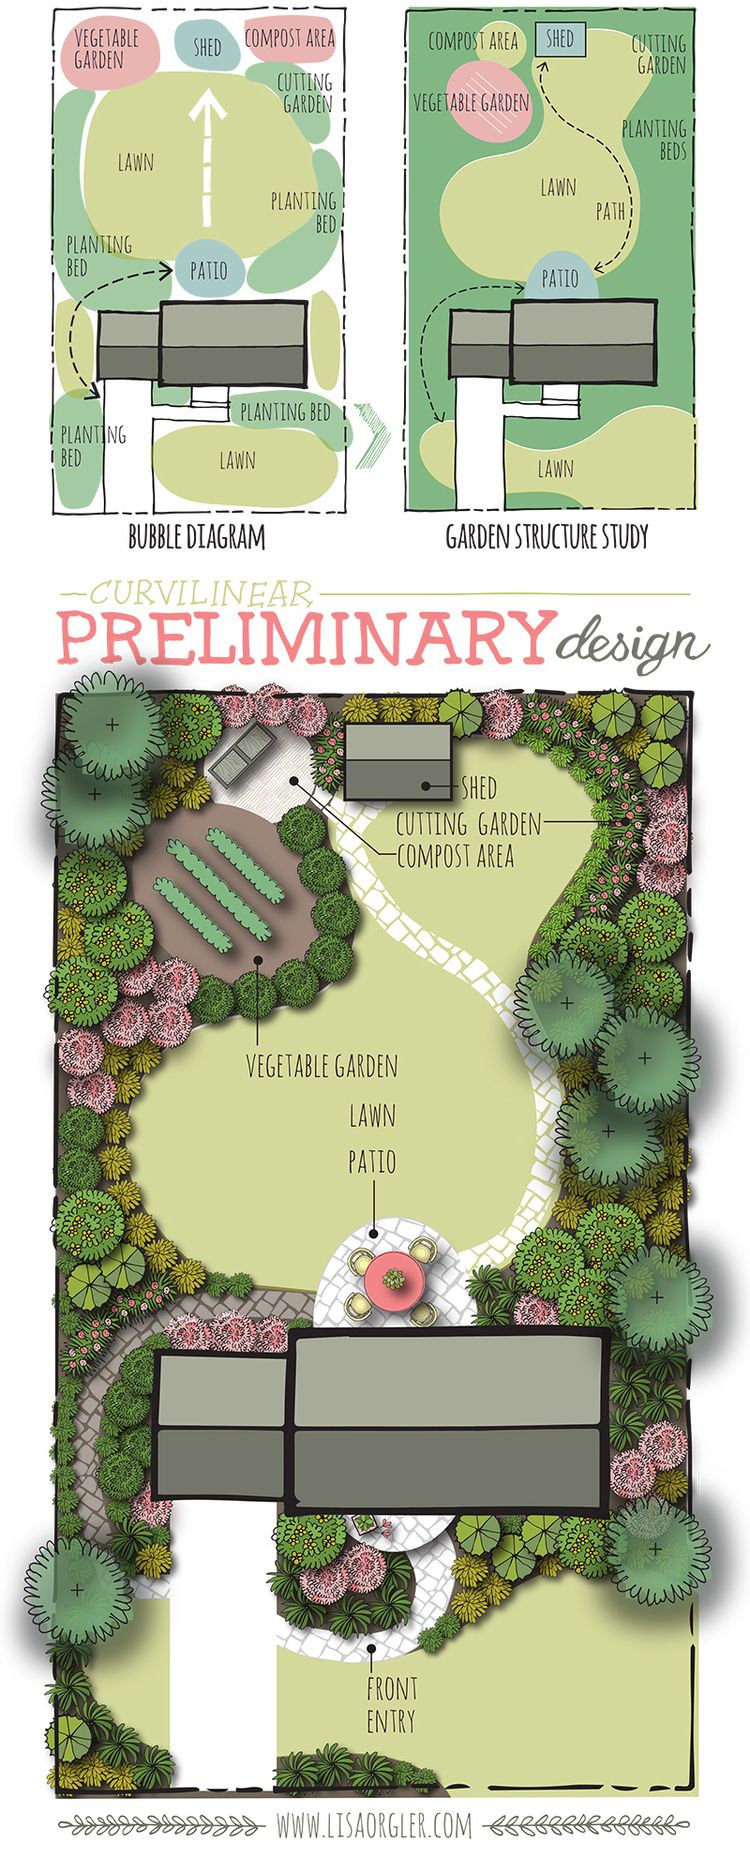 Jun 24 Garden Inspiration | Design process, Landscape designs and ...